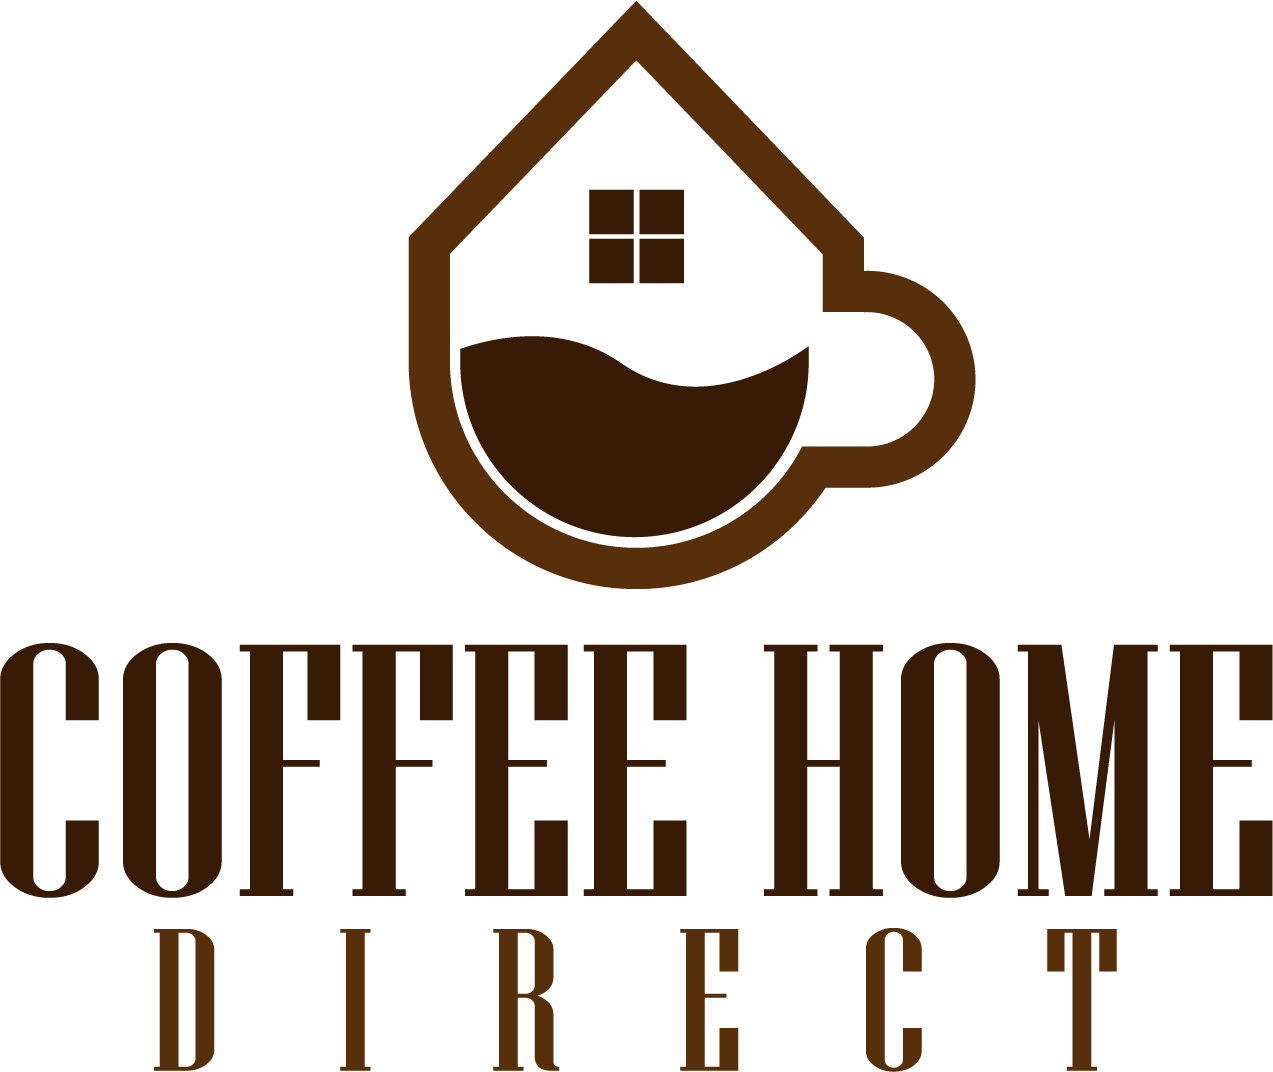 Coffee Home Direct